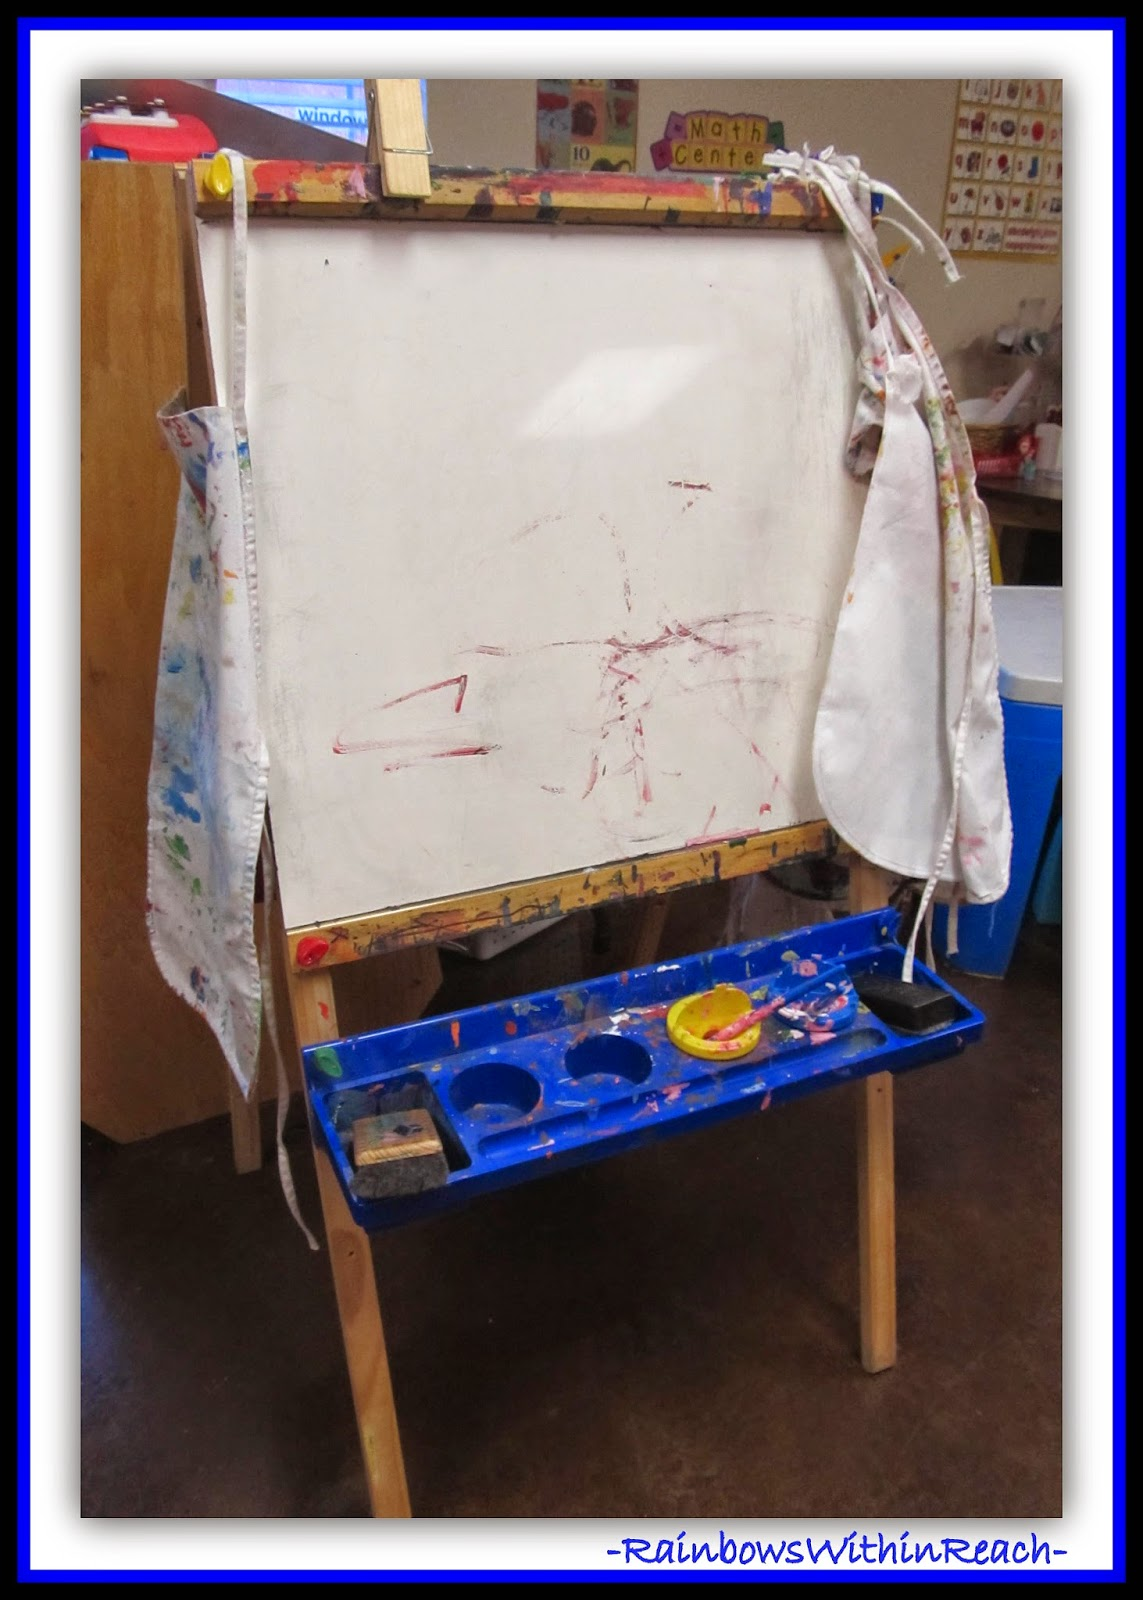 56 Easels: What do you WONDER? Creativity explored at RainbowsWithinReach